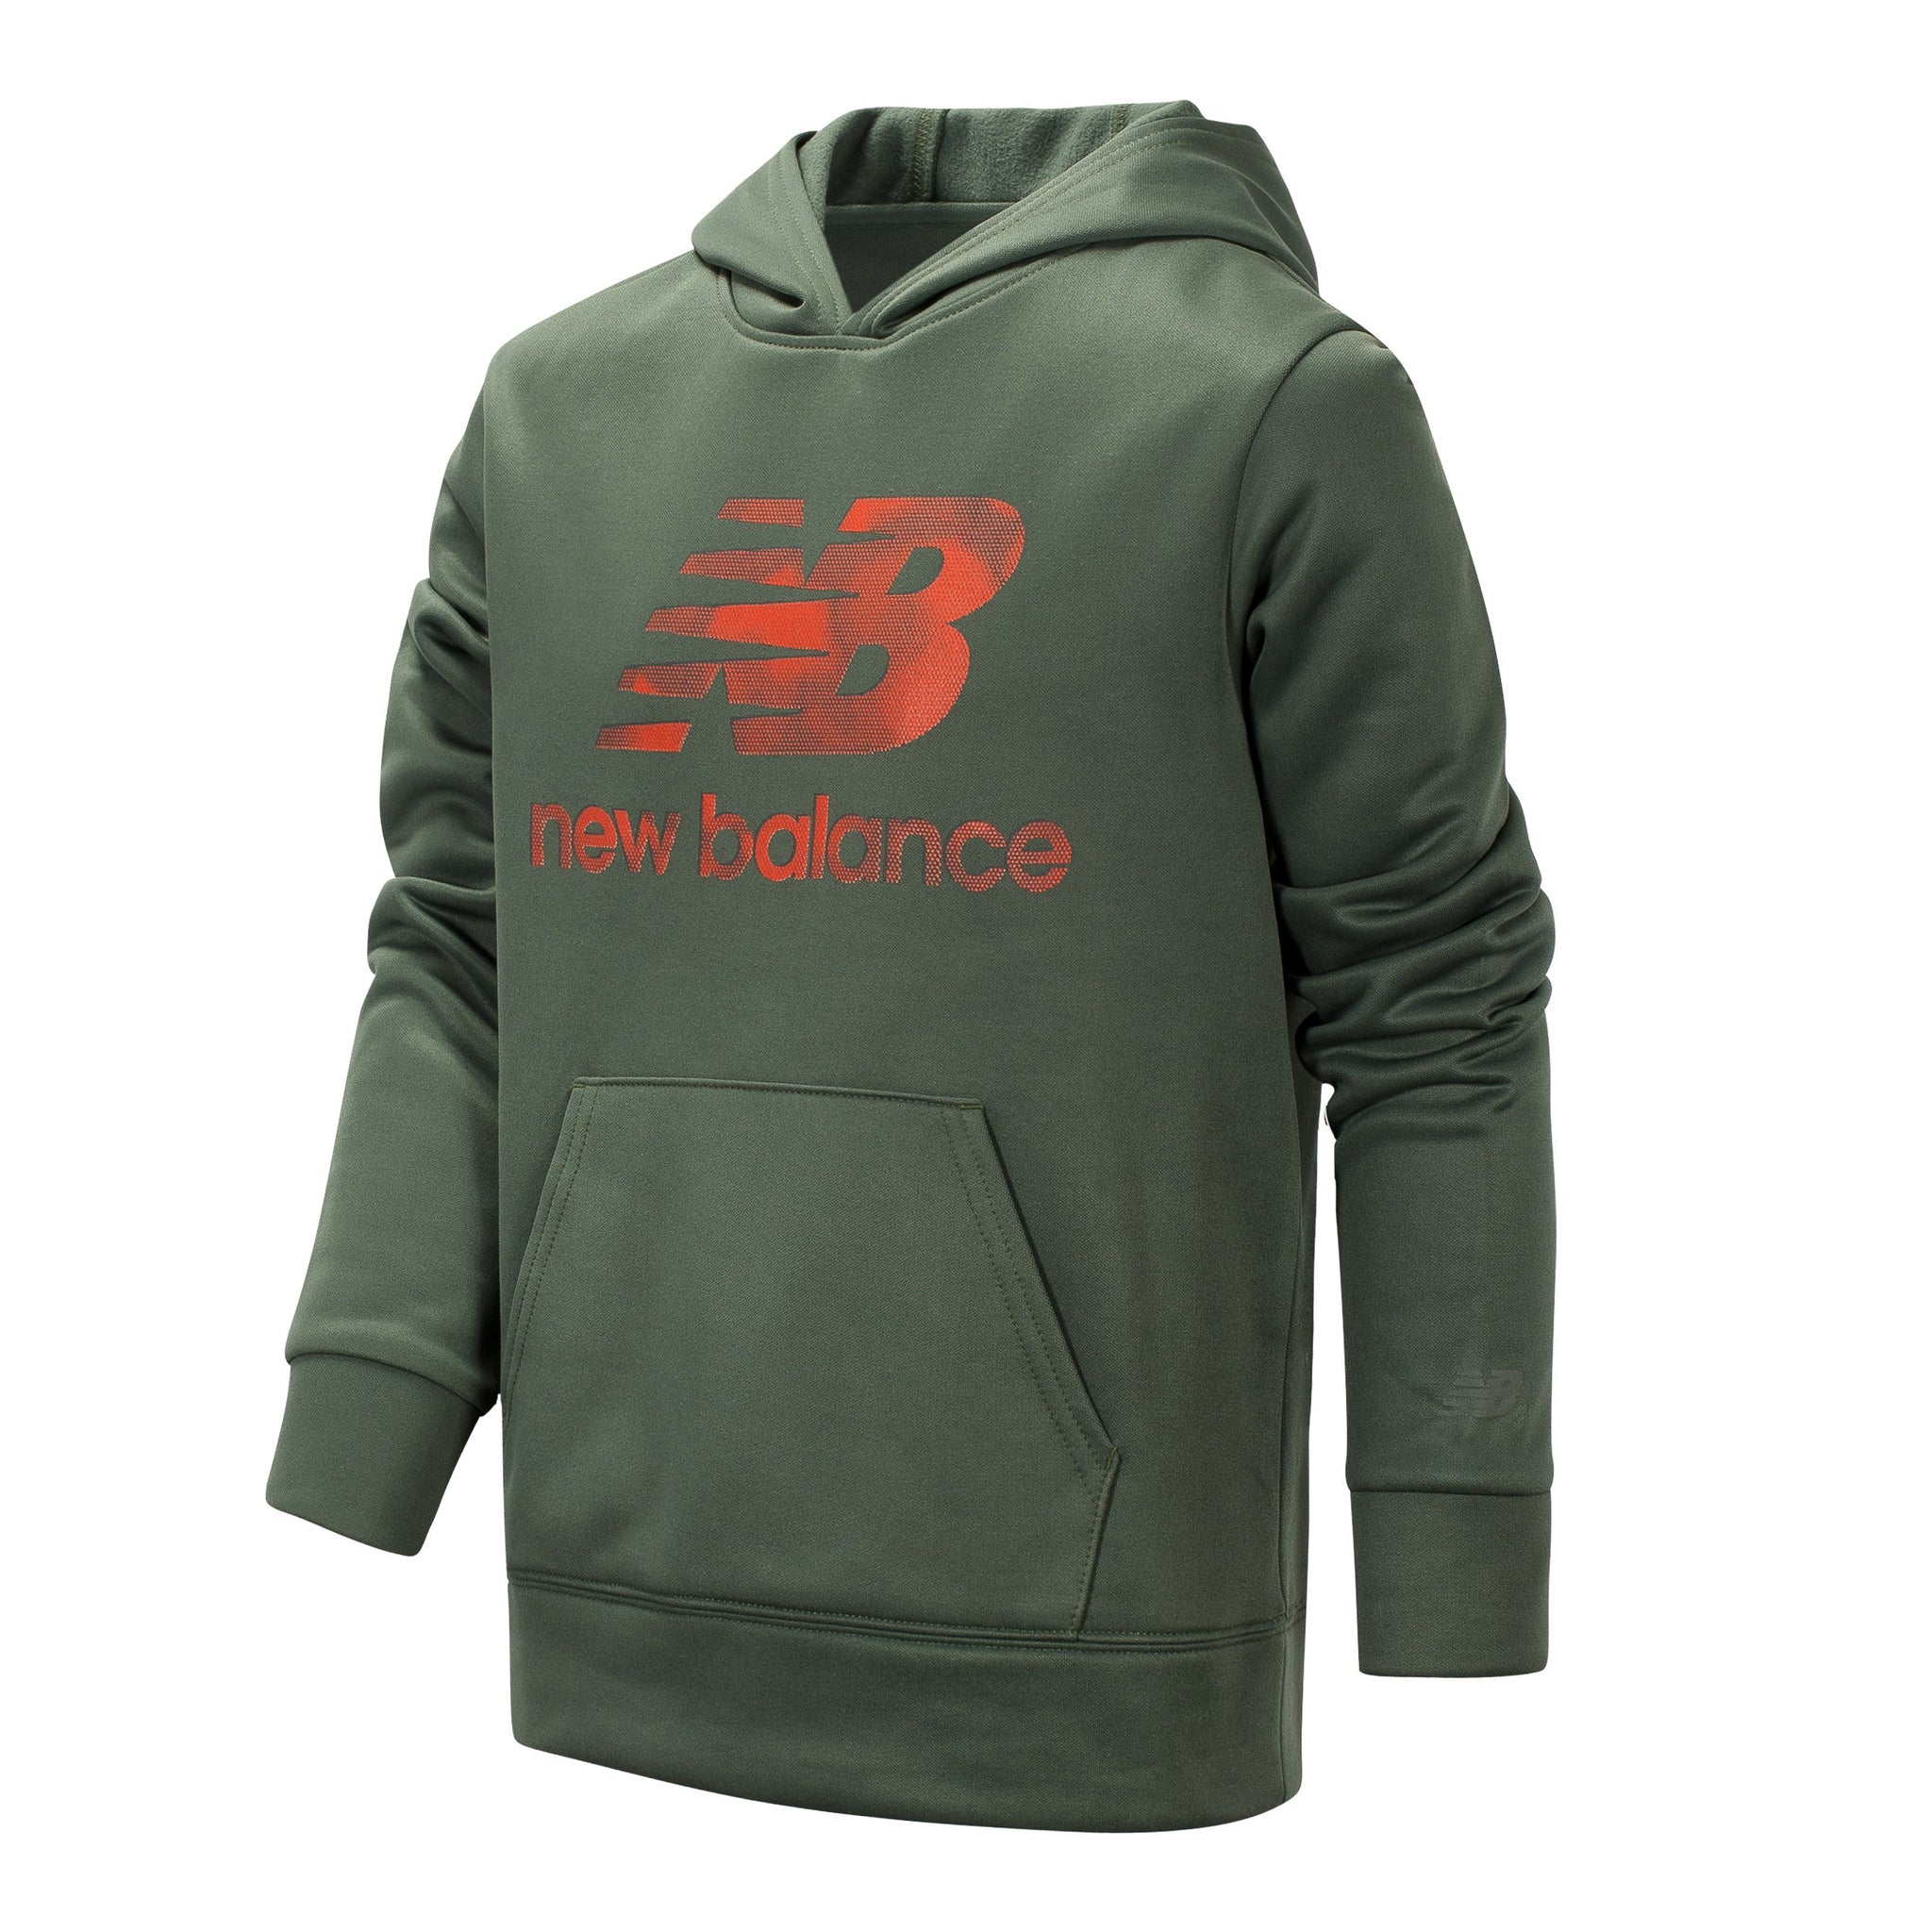 Boys' New Balance Slate Green Graphic Hoodie